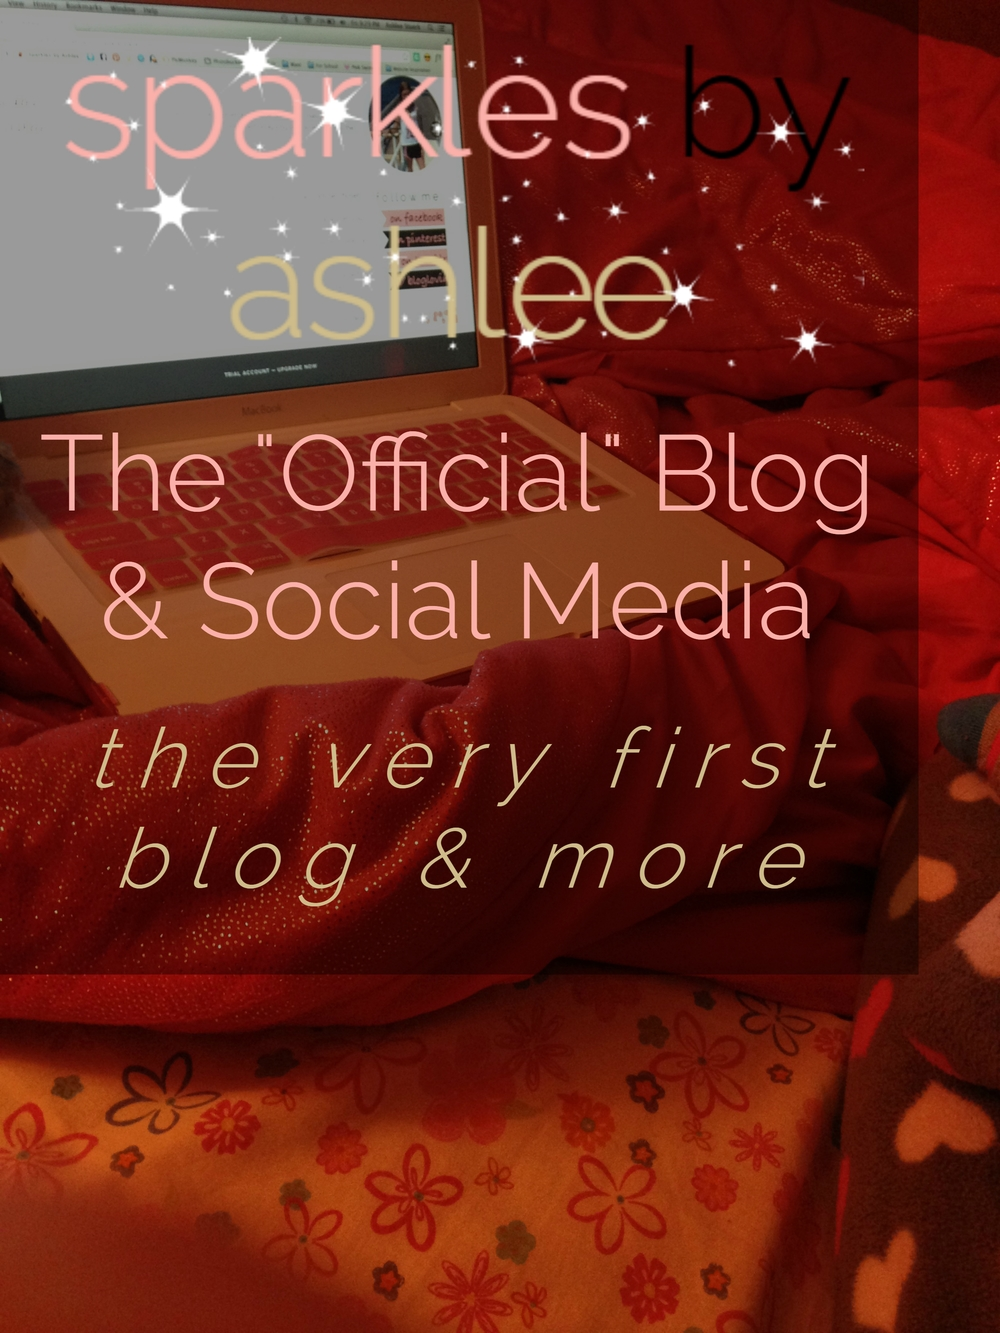 The-Official-Blog-and-Social-Media-Sparkles-by-Ashlee.jpg